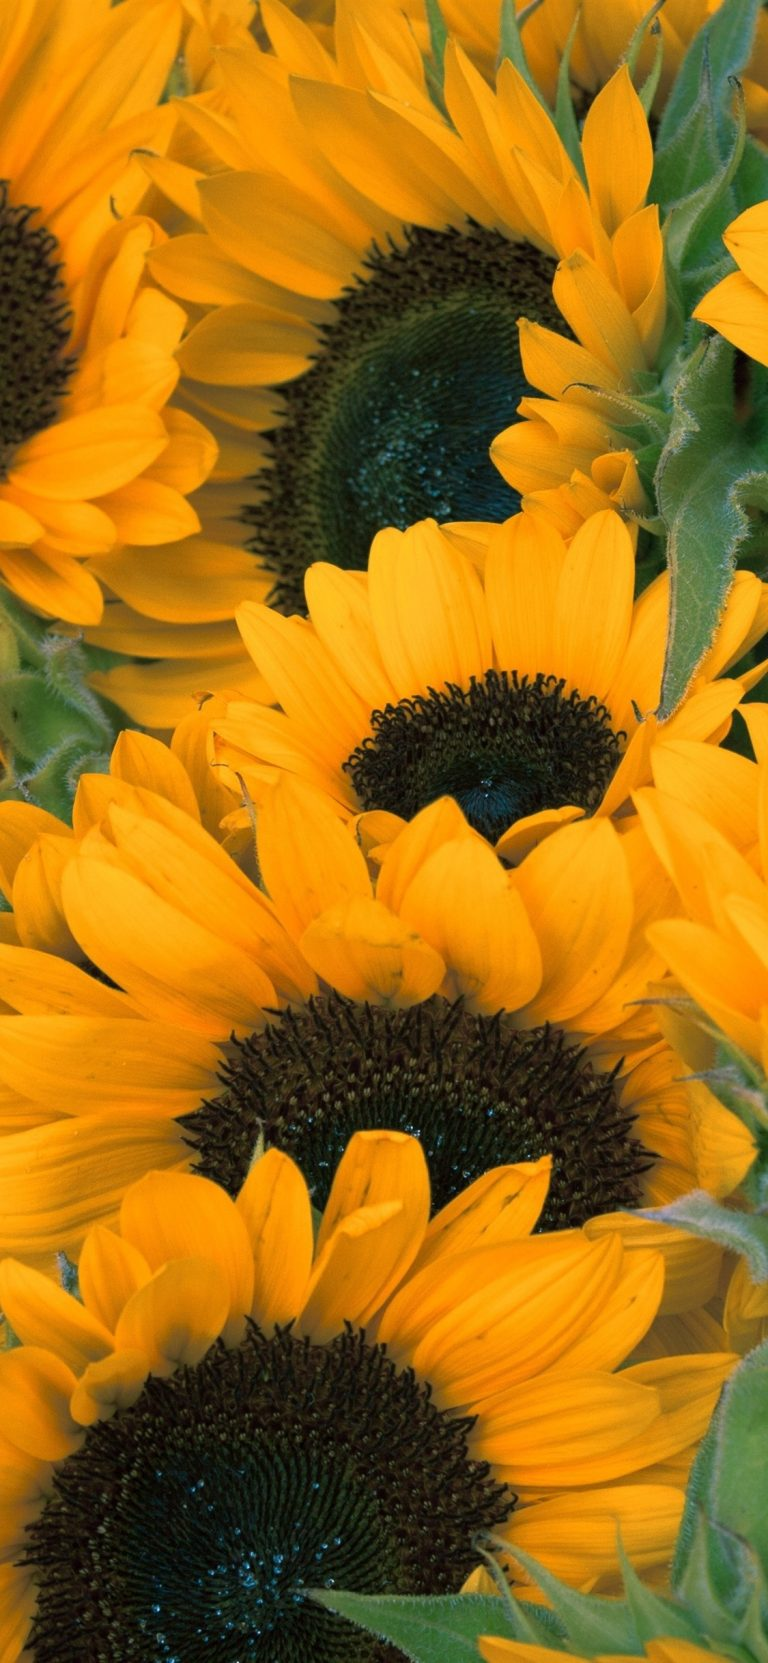 sunflower wallpaper 110